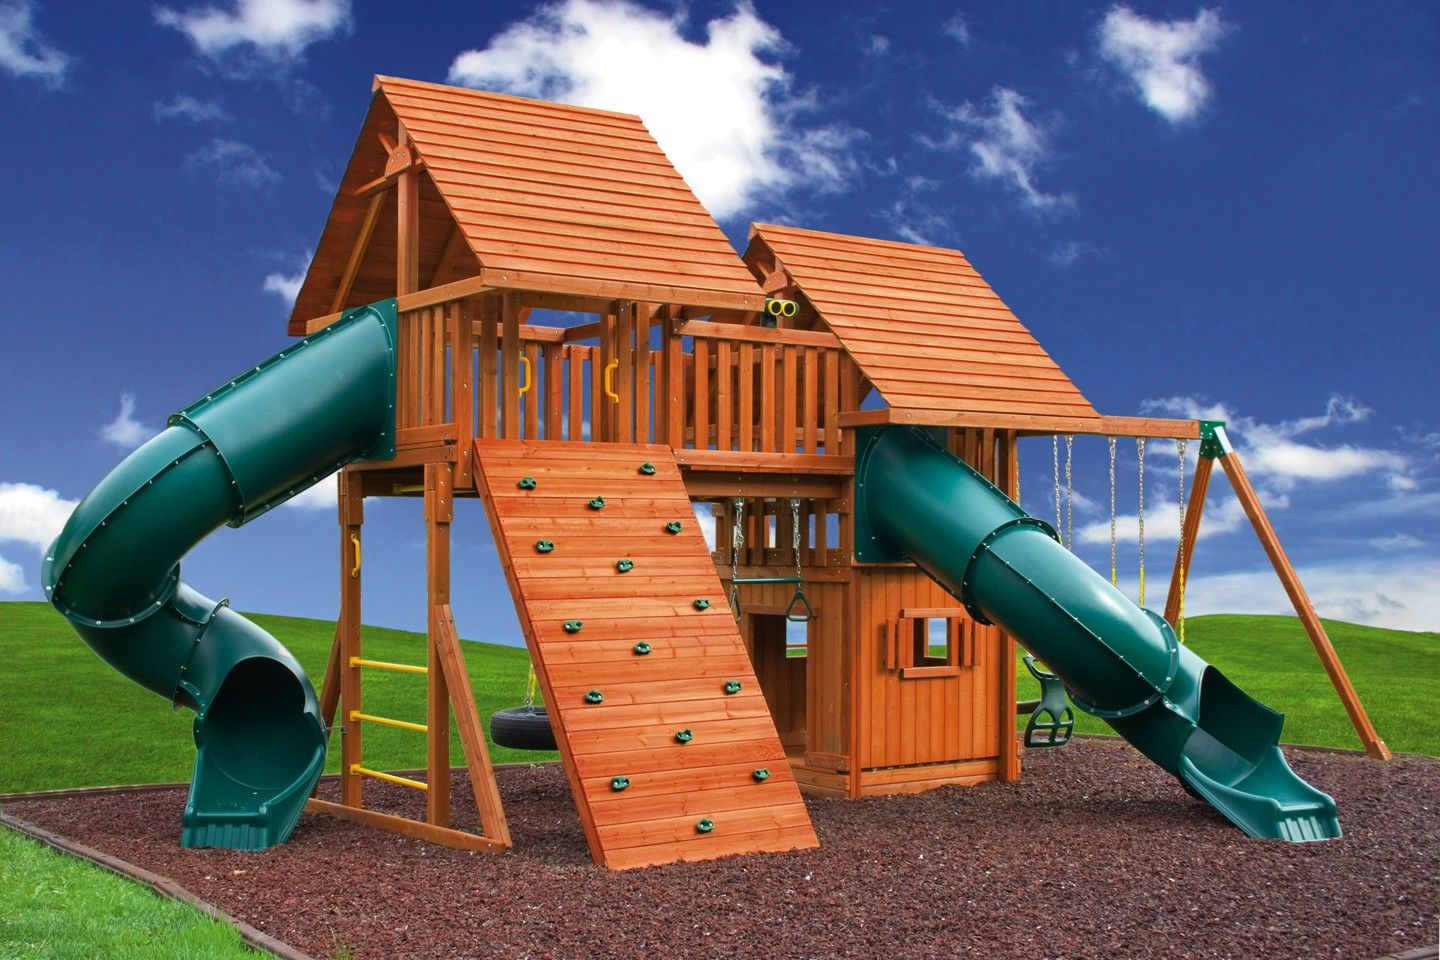 Fantasy 5 Wooden Playset